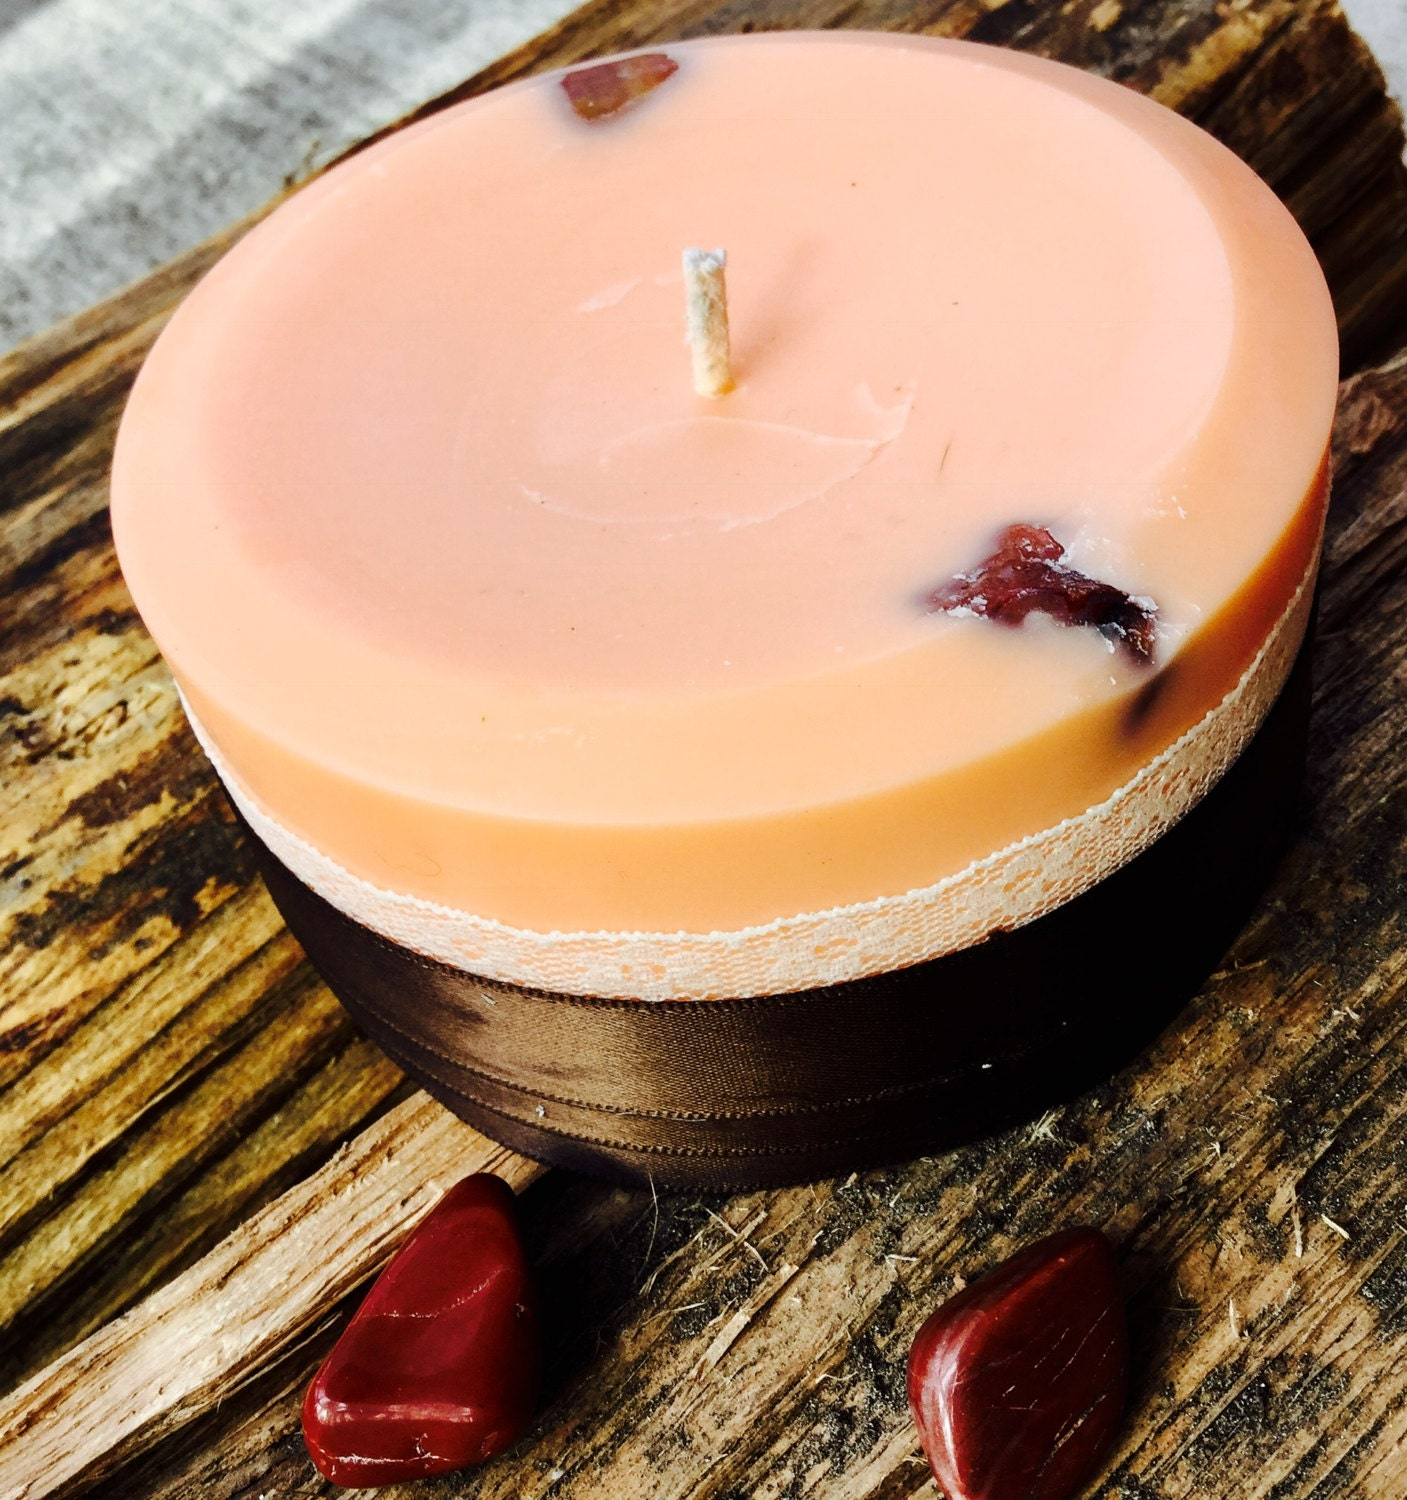 Sandalwood scented soy fertility candle embedded with Red Aventurine and wrapped with lace and ribbon.